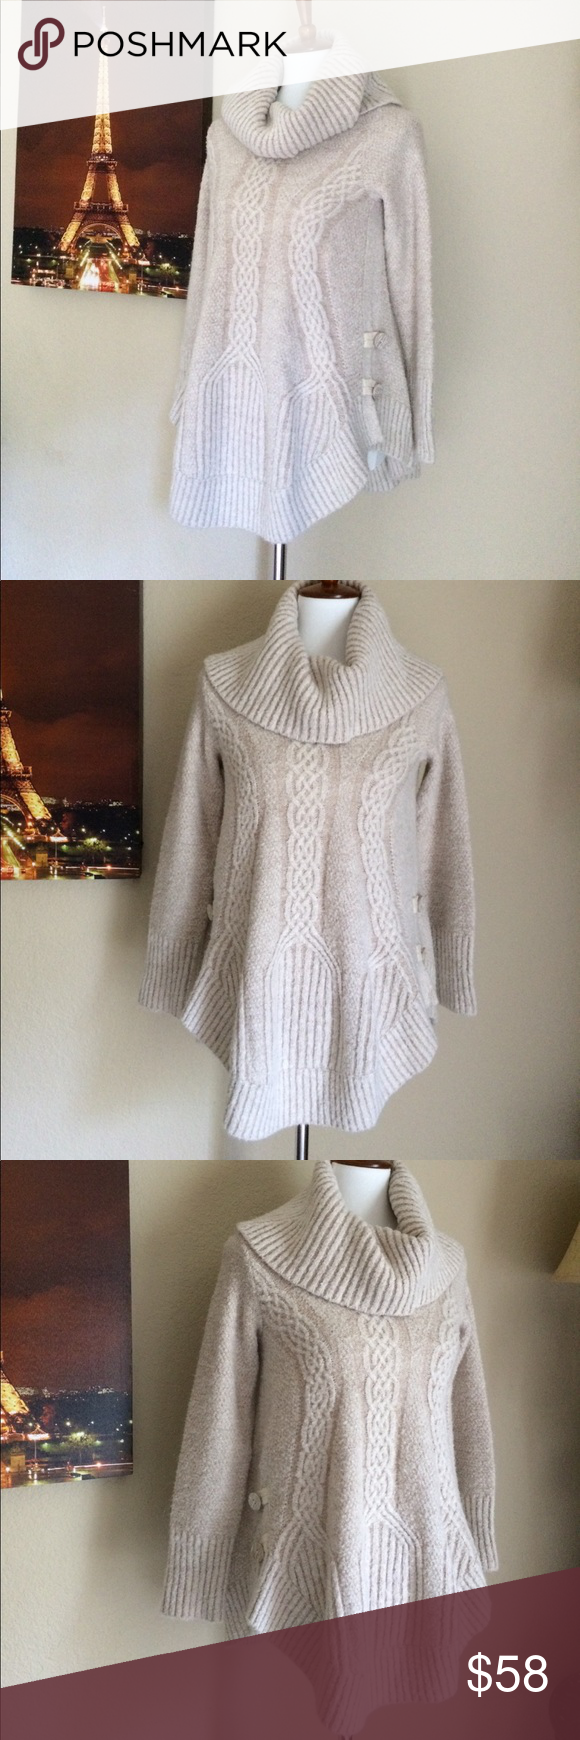 Anthropologie Angel of the North Sweater | Anthropologie, Cowl ...